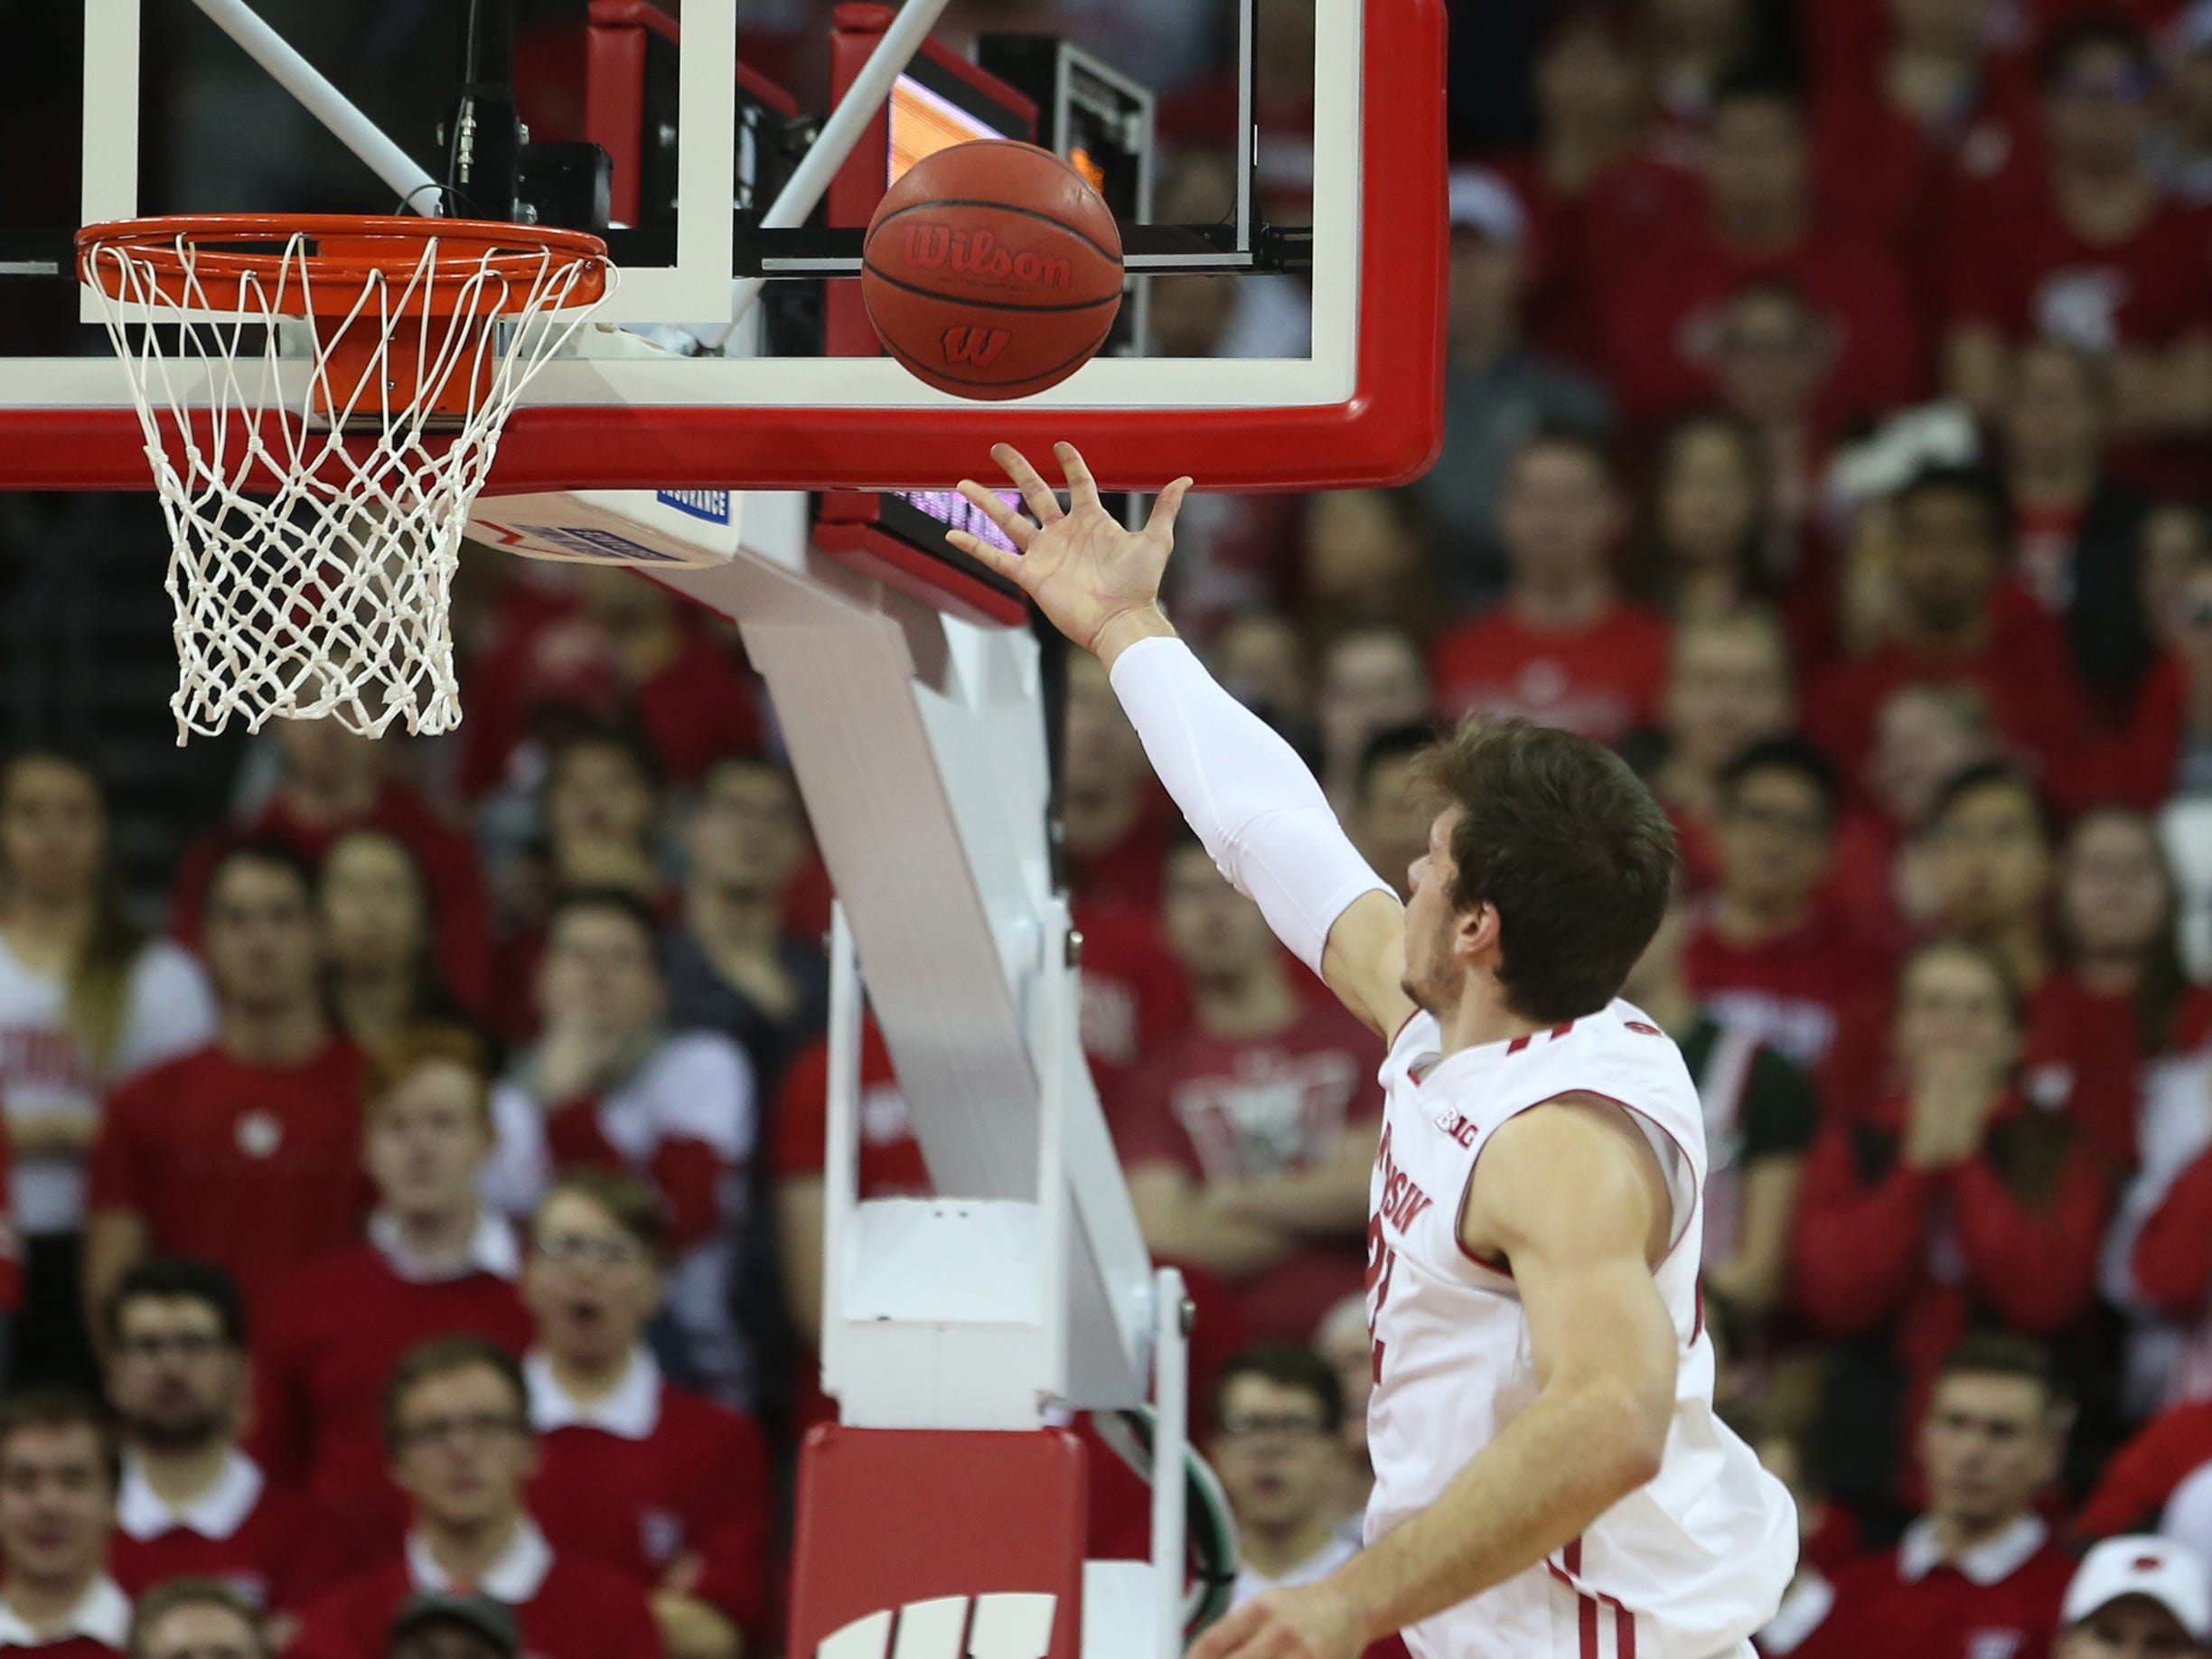 Wisconsin forward Ethan Happ has a clear path to the basket for an easy layup against Rutgers on Monday night.